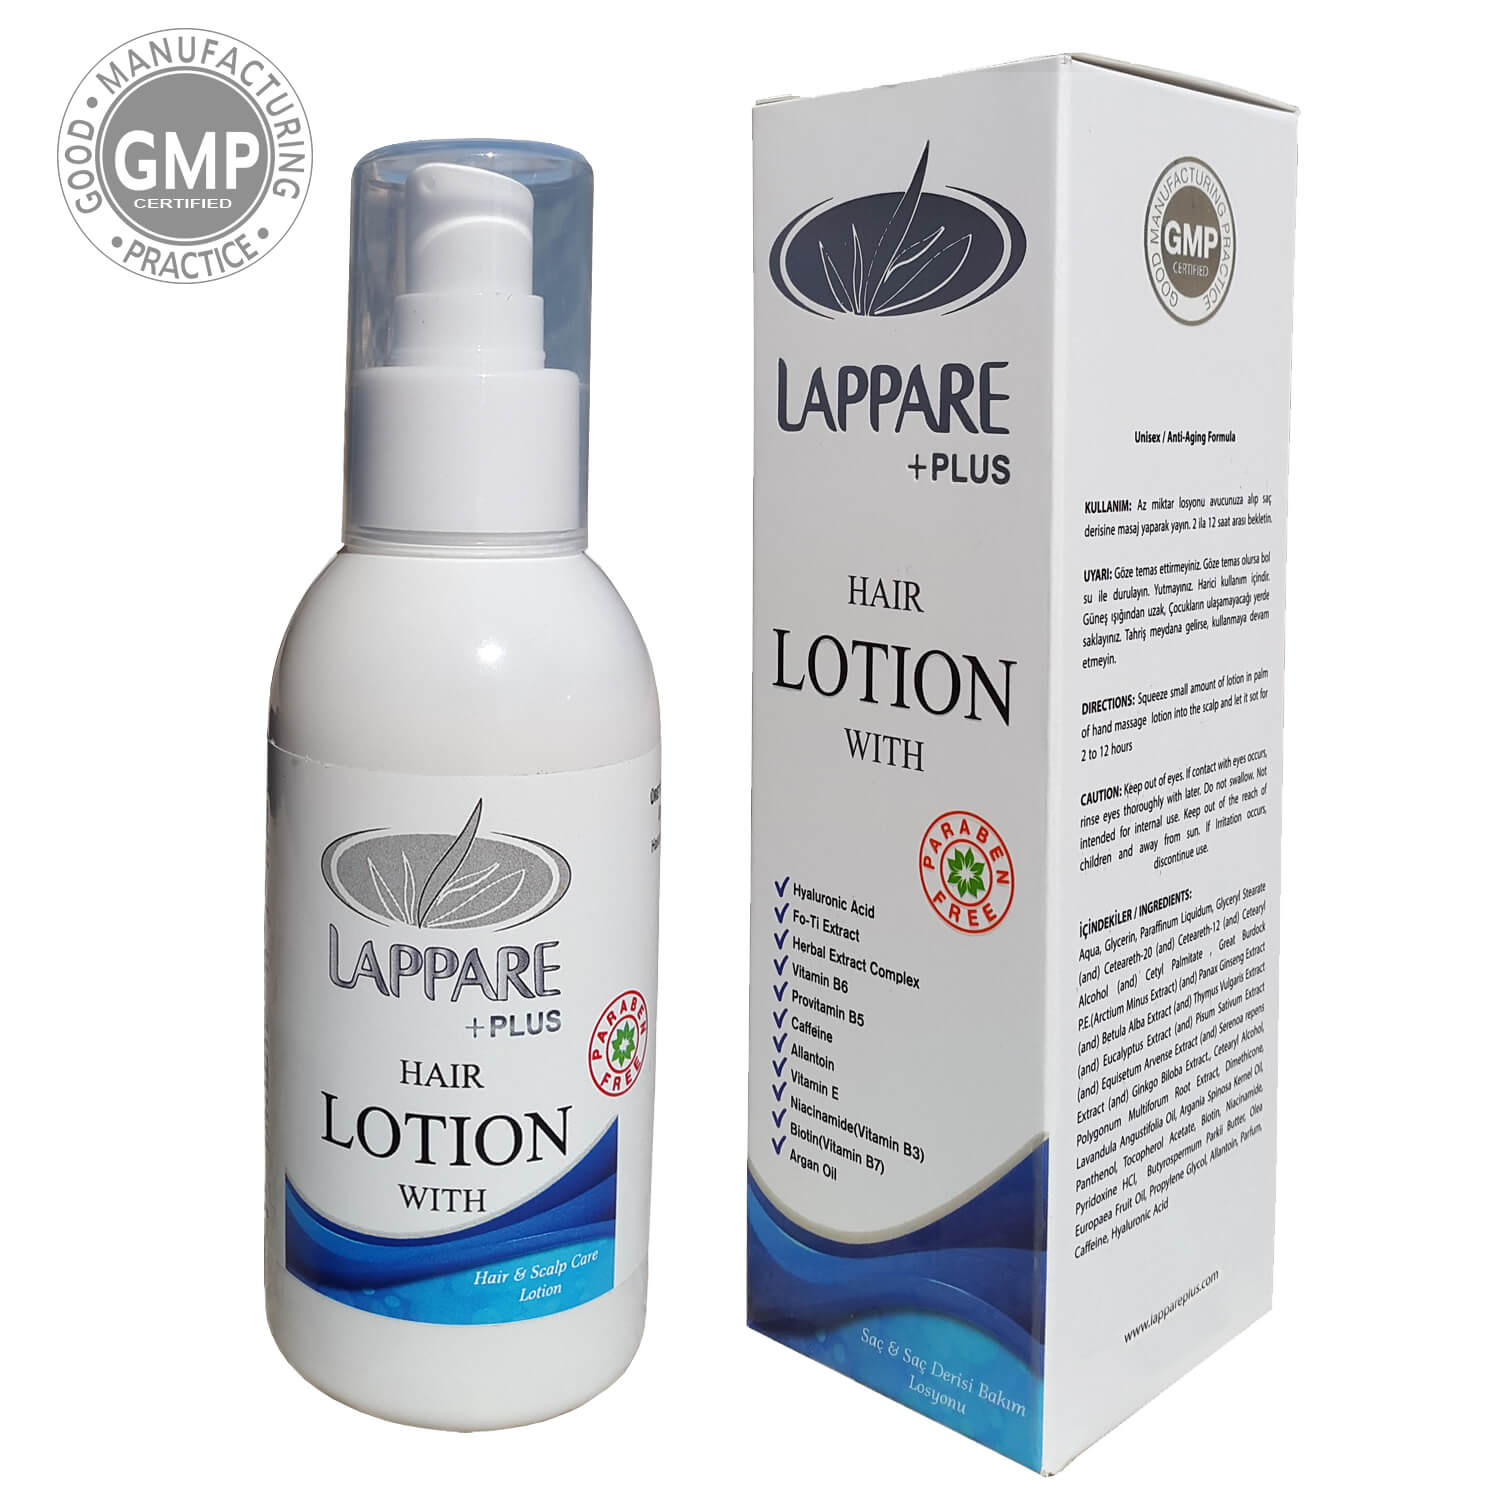 Lappare Herbal Hair & Scalp Treatment Anti-Aging Lotion Containing Keratin, Biotin, Hyaluronic Acid, Argan Oil 125ml.